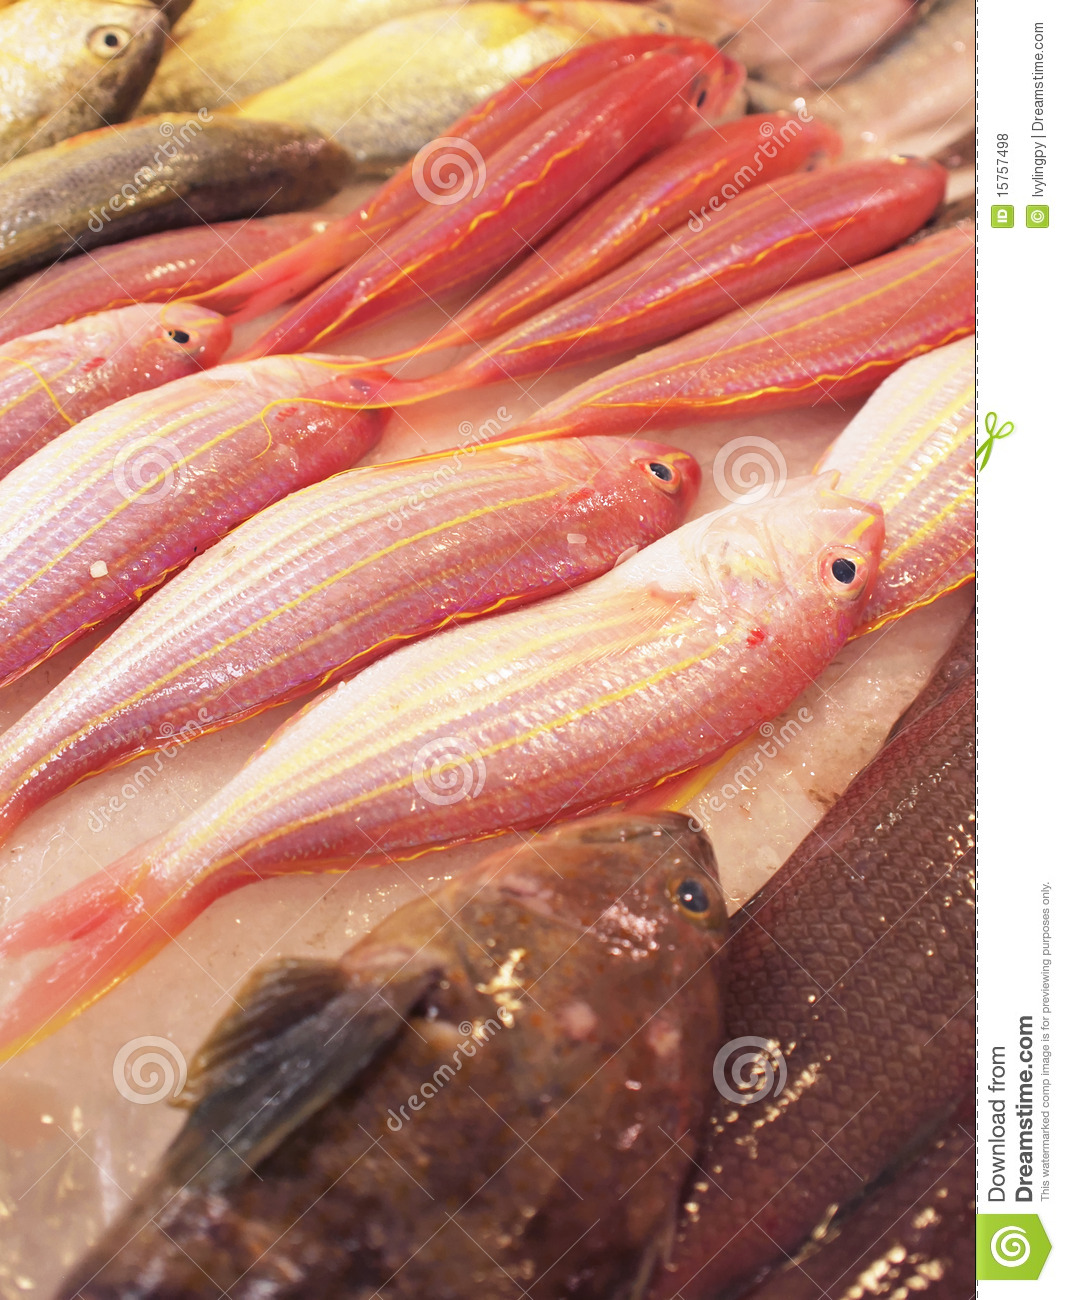 Fish for sale in market royalty free stock photos image for Stock fish for sale